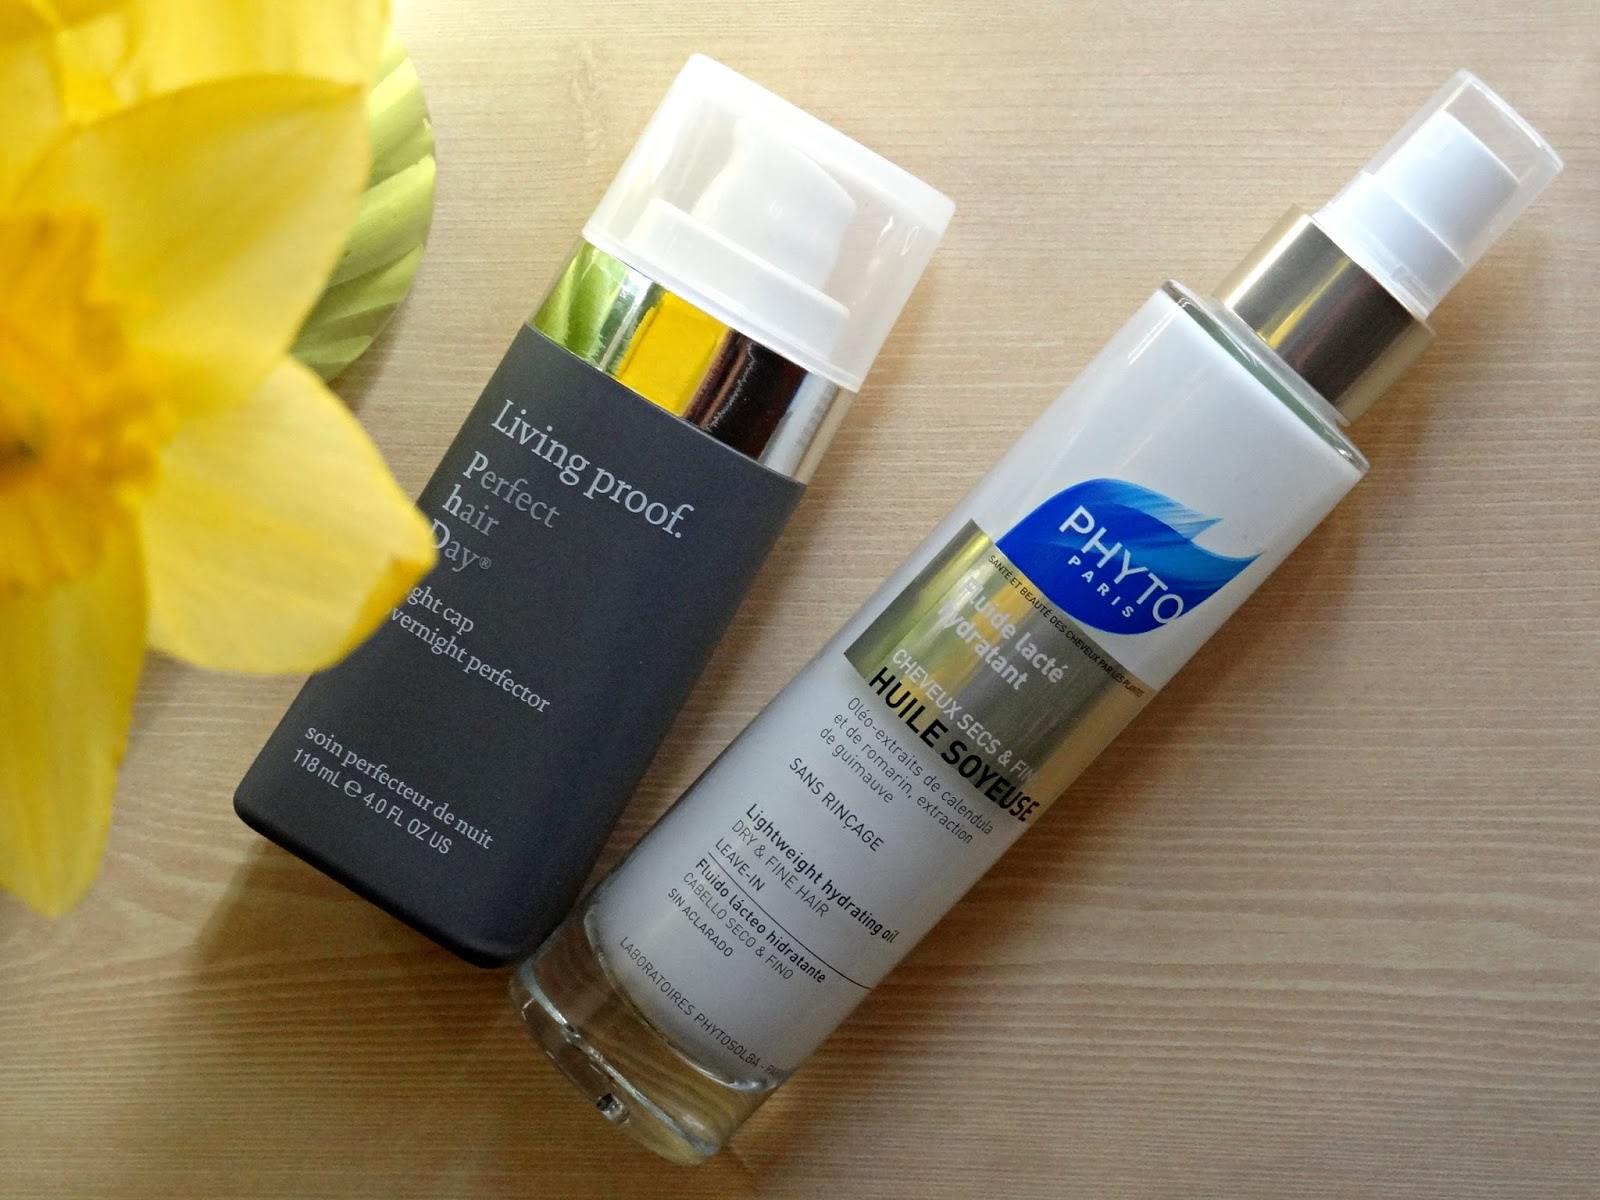 Two Fabulous Haircare Products To Try This Spring From Living Proof and Phyto Paris